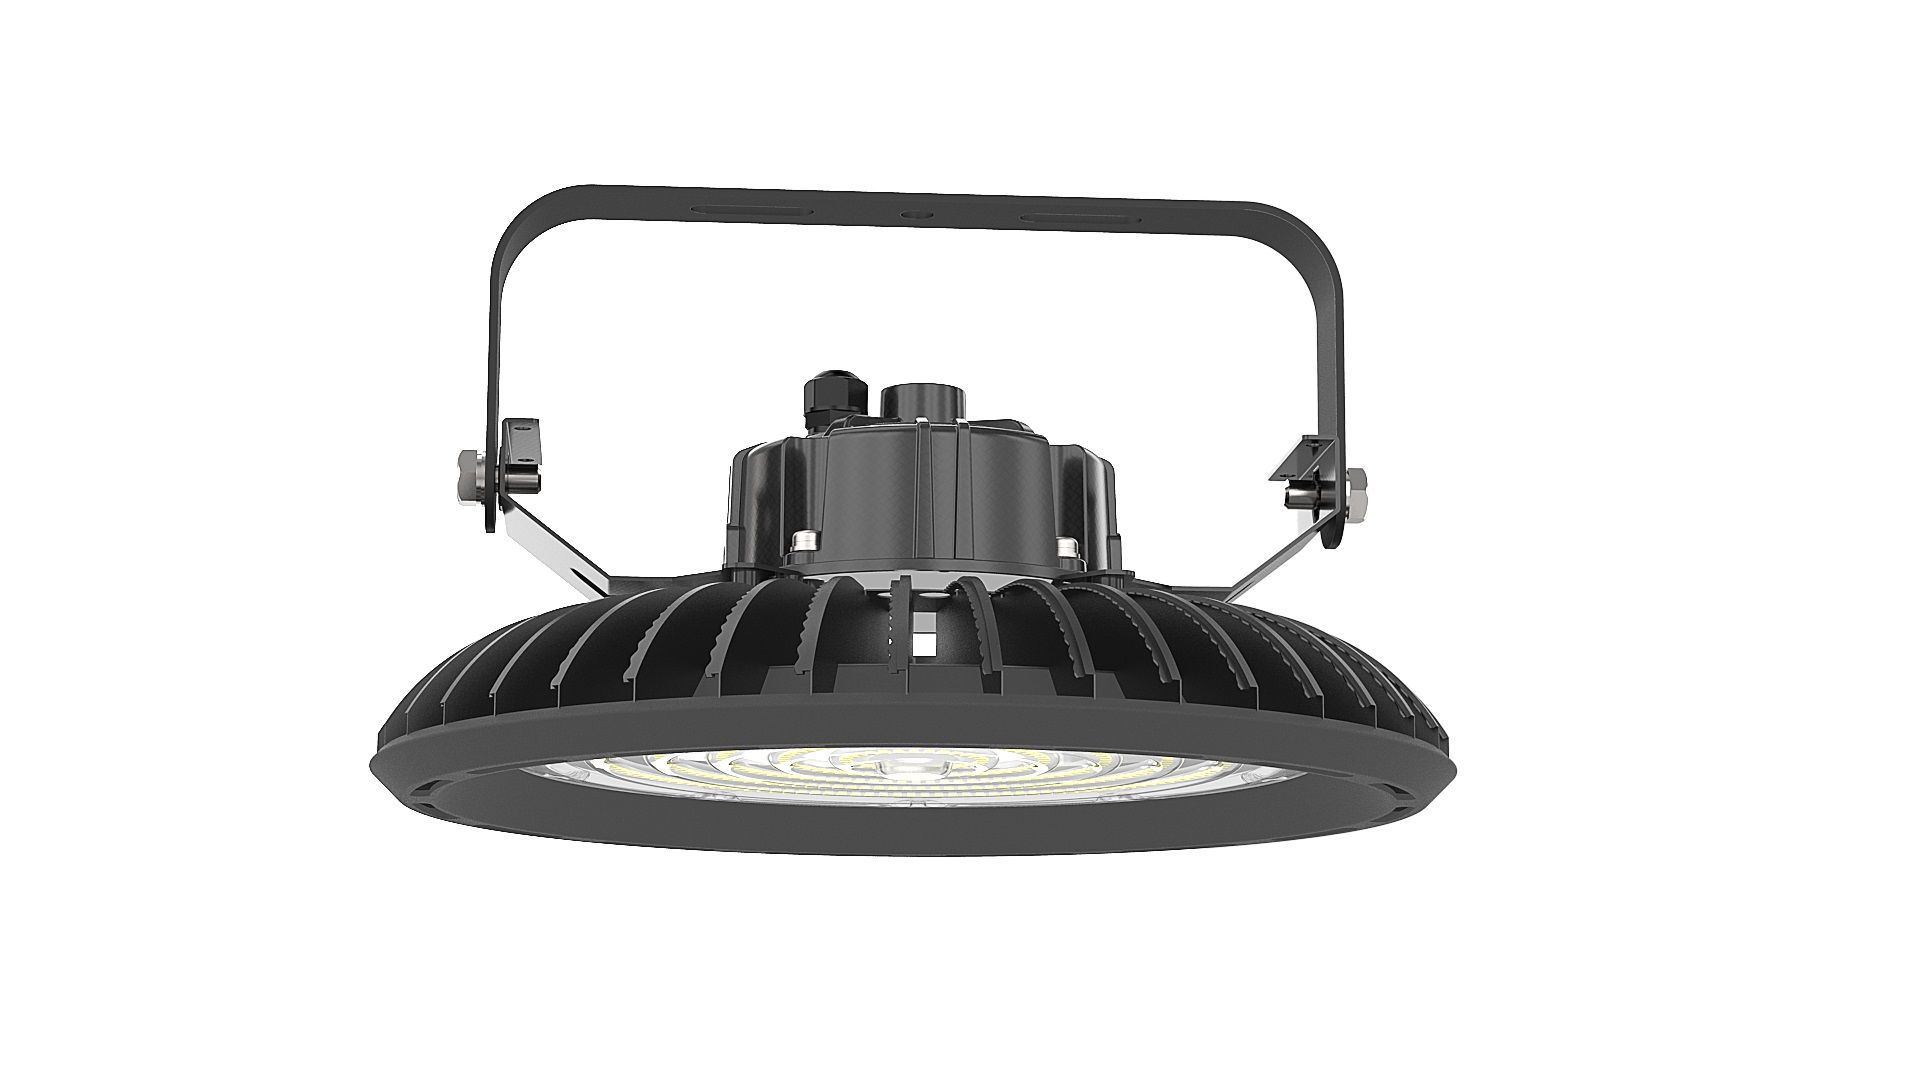 Greenie LED HighBay Flat UFO Industrielampe